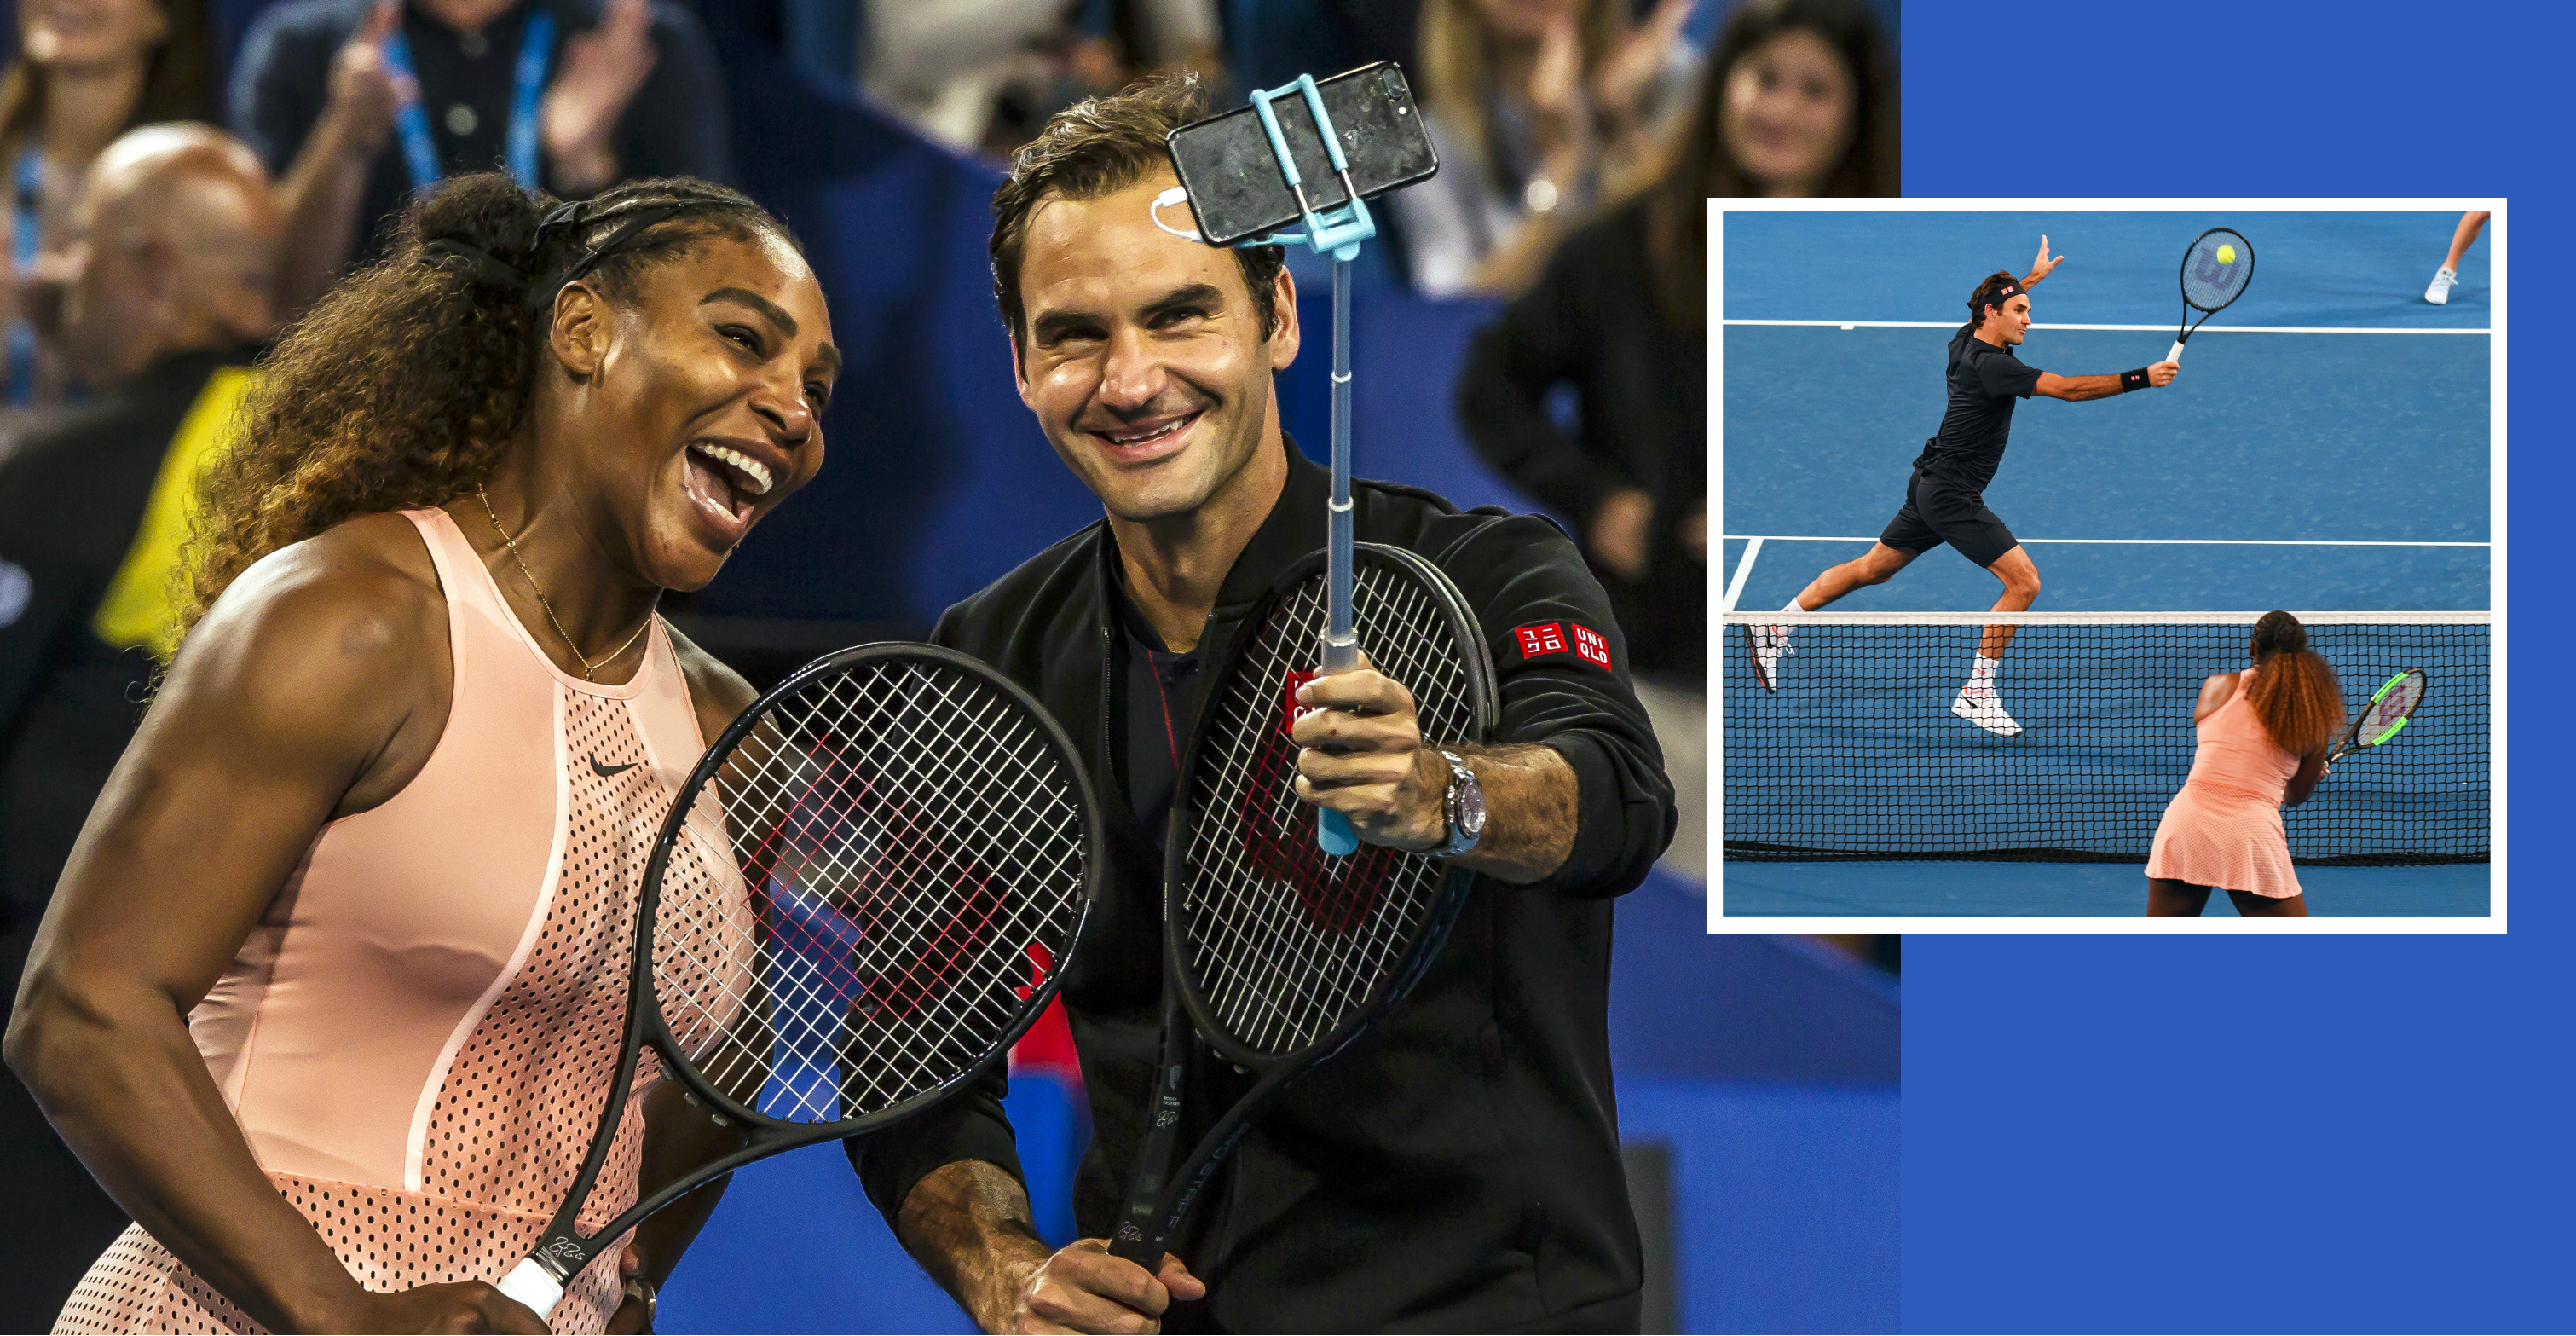 Roger Federer and Serena Williams are both ecstatic  after their first meeting in the Hopman Cup in Perth, Australia, on Tuesday. Photo: AFP